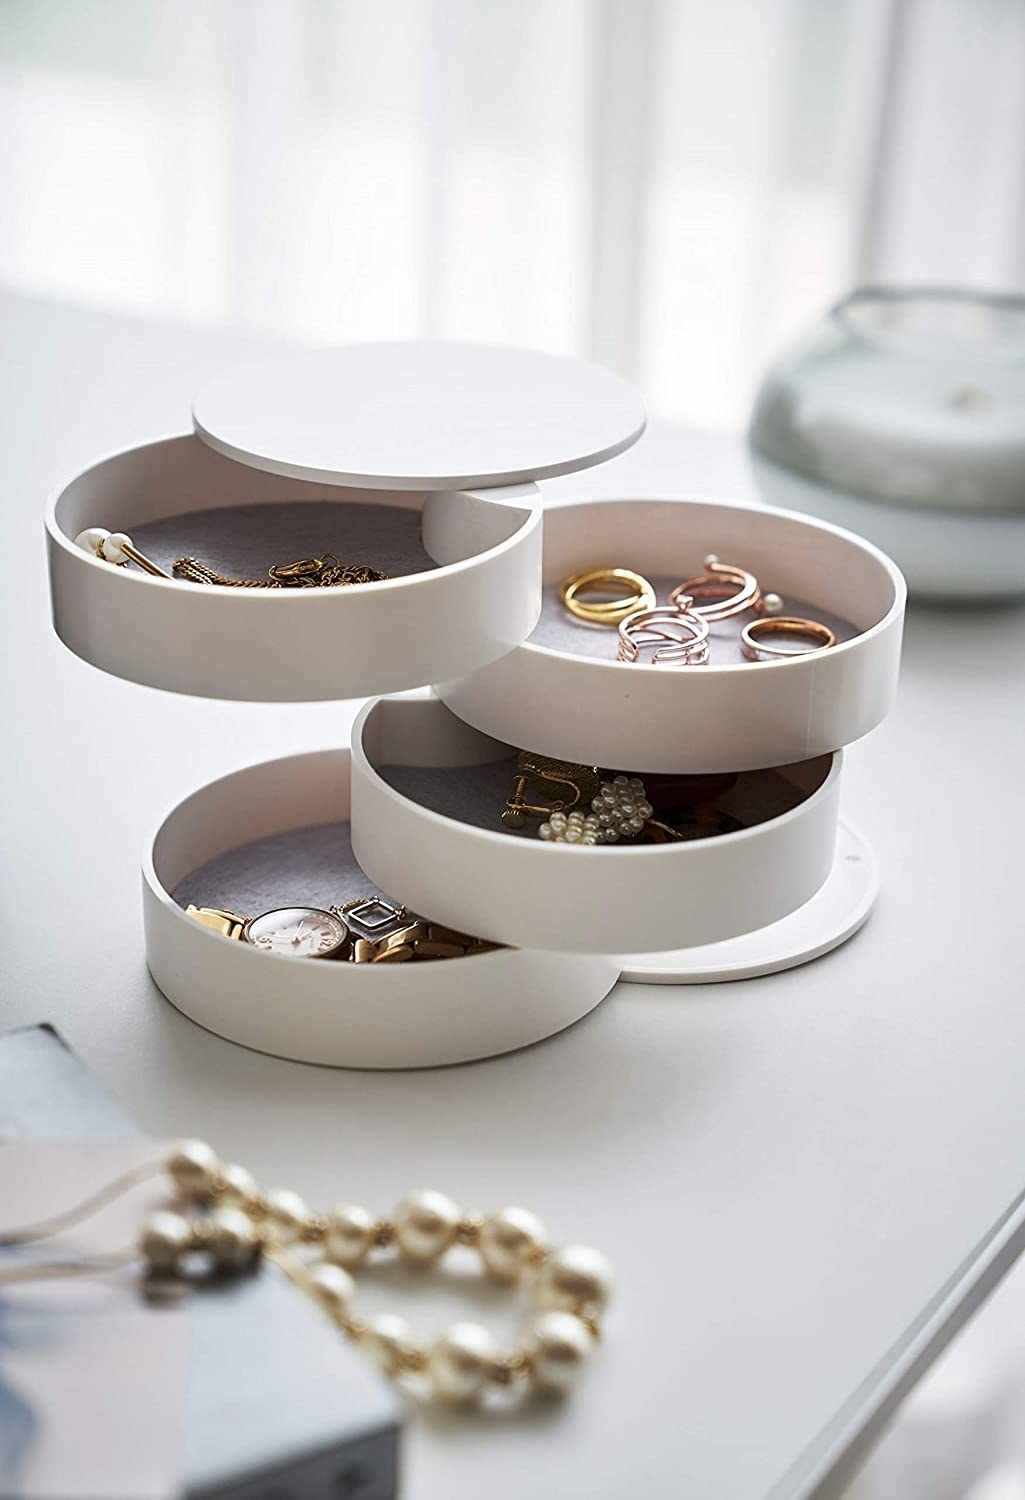 The circular jewelry box open showing the four containers that have jewelry in them